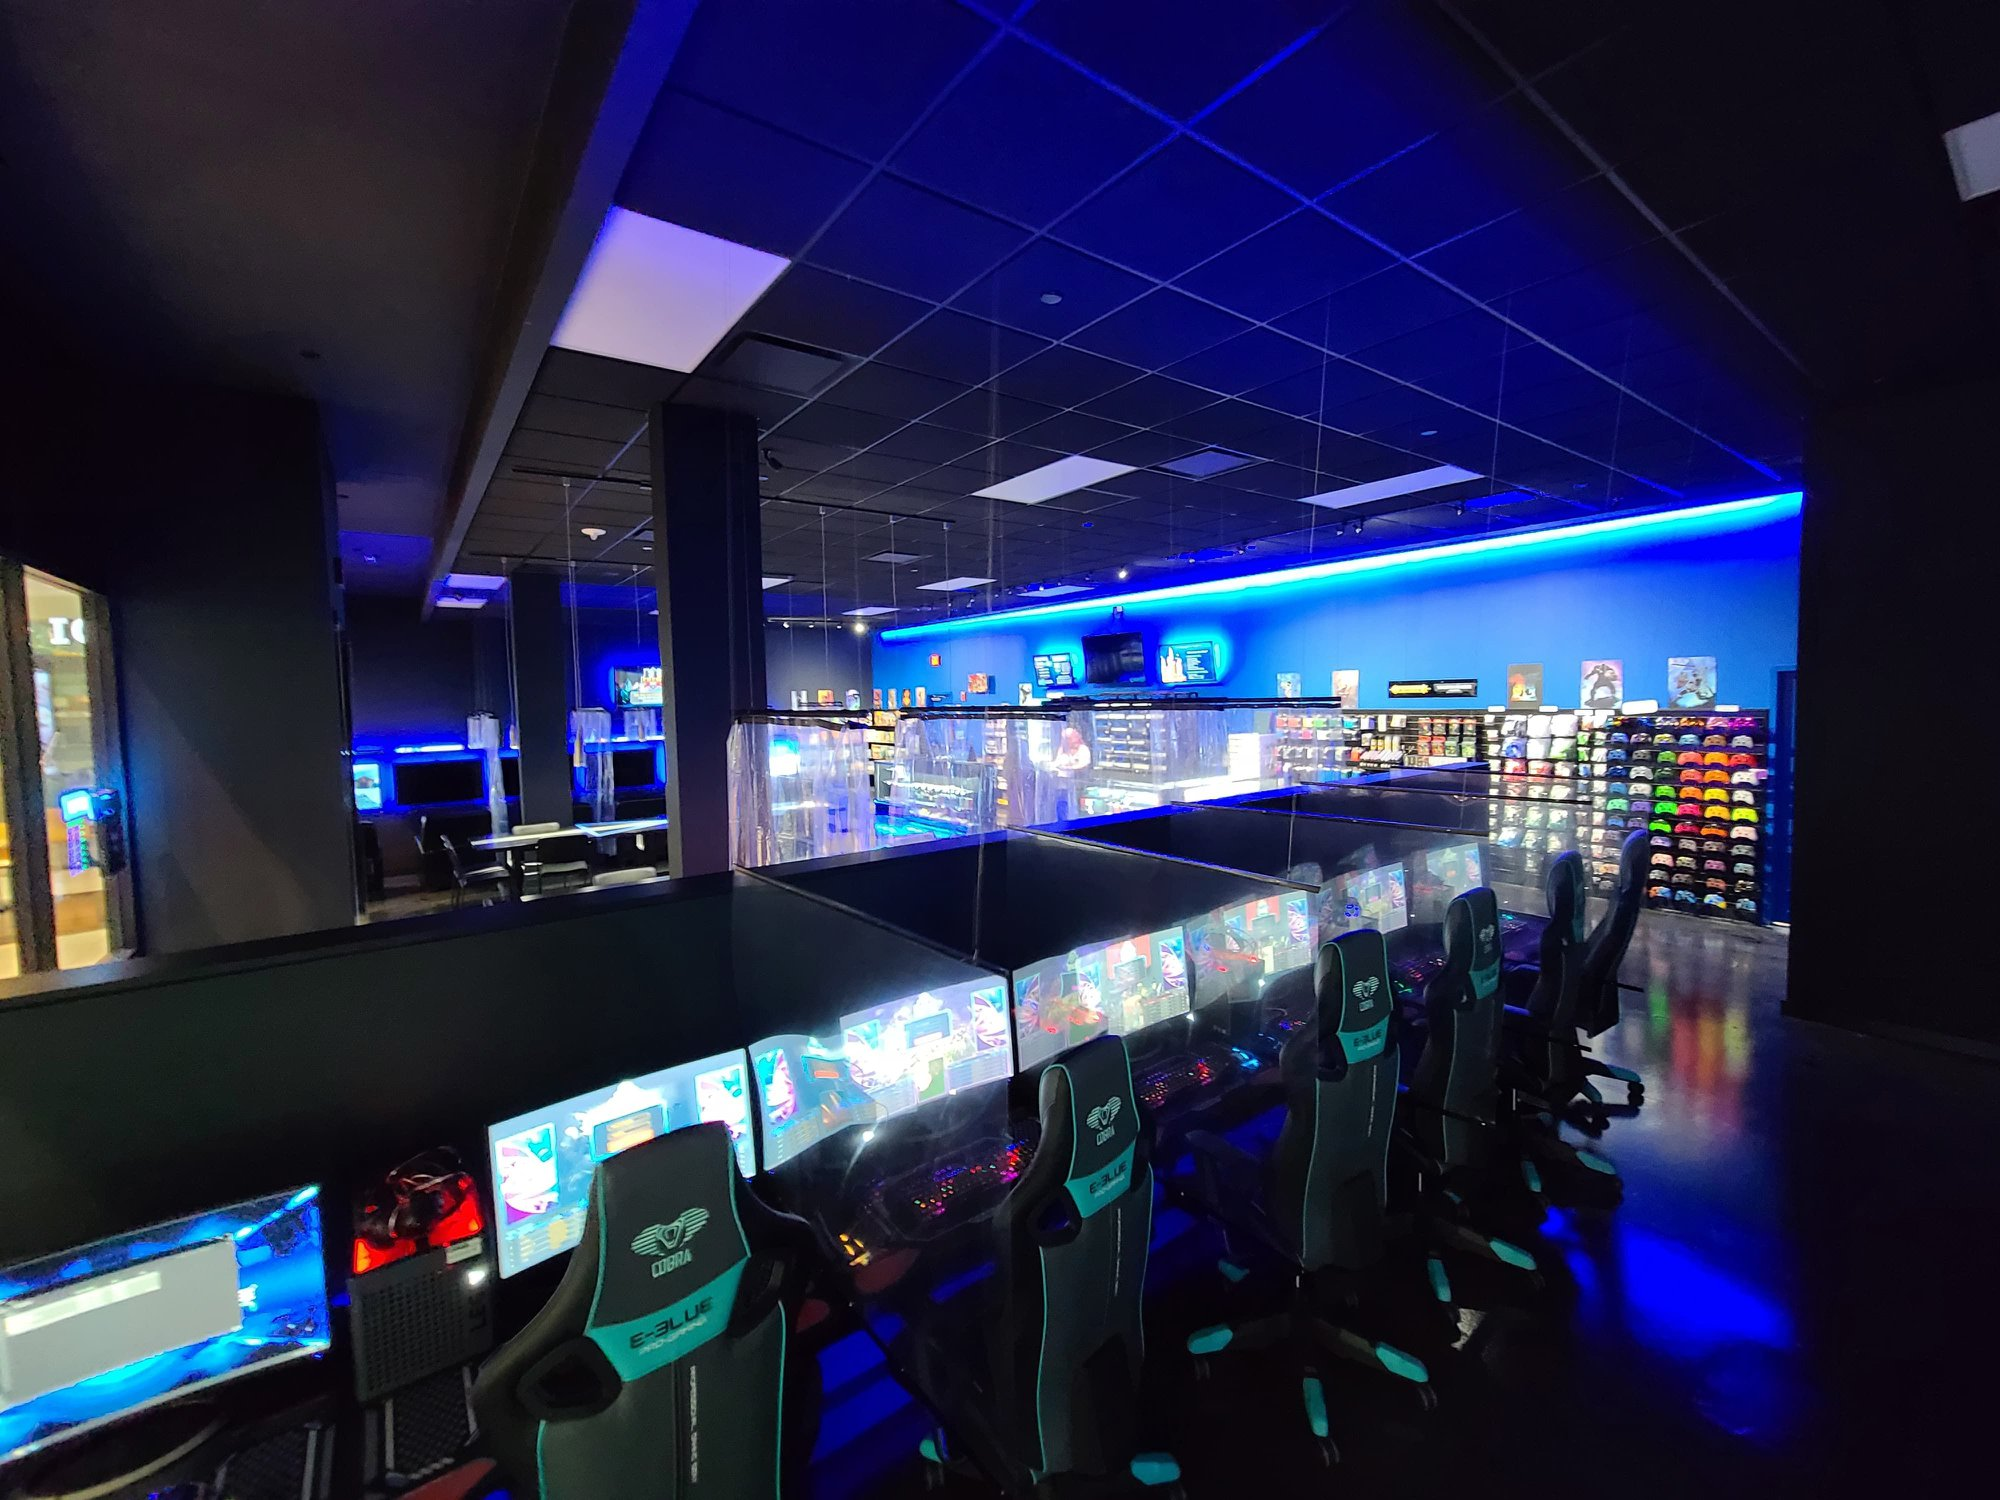 PLAYlive Nation - South Park Mall offers the best digital and table-top entertainment in one place